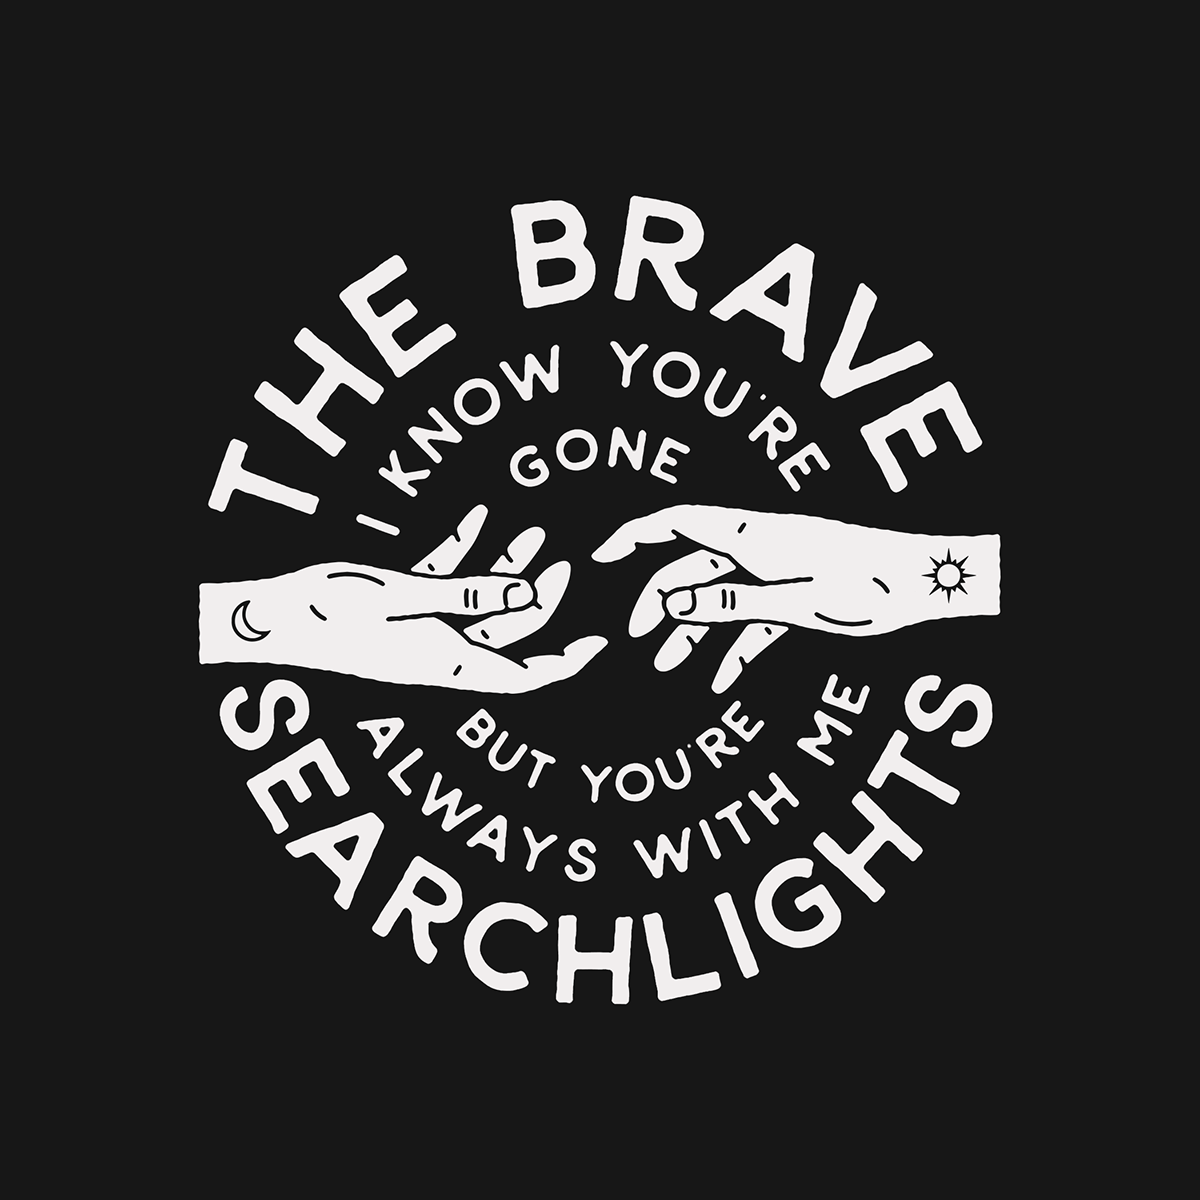 Merchandise designs for The Brave